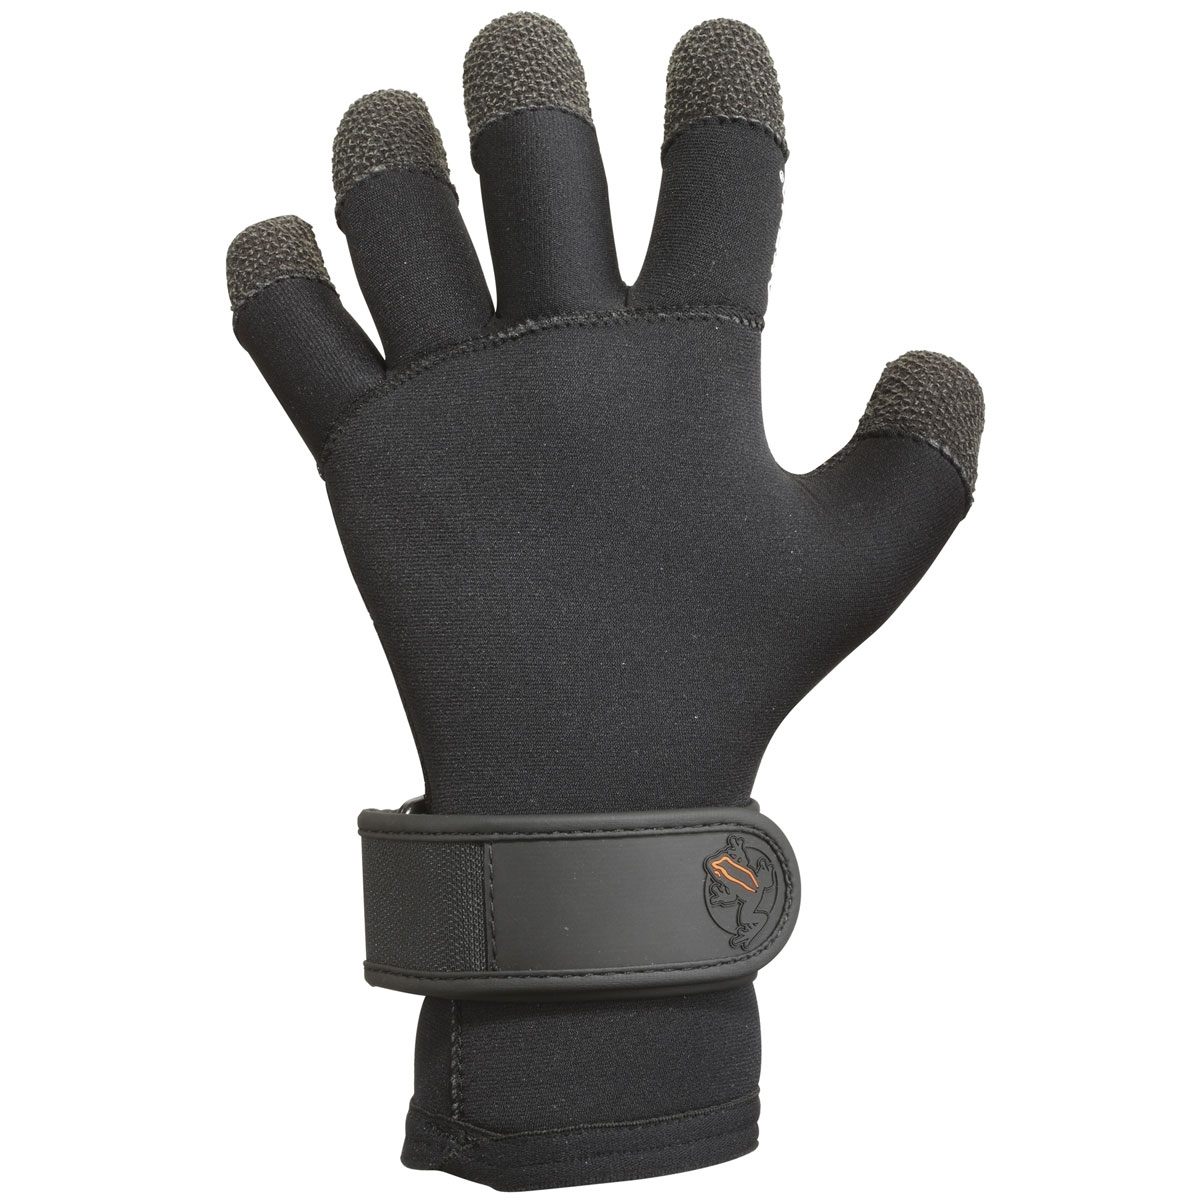 Akona 3.5mm Armor Tex Tip Glove SM